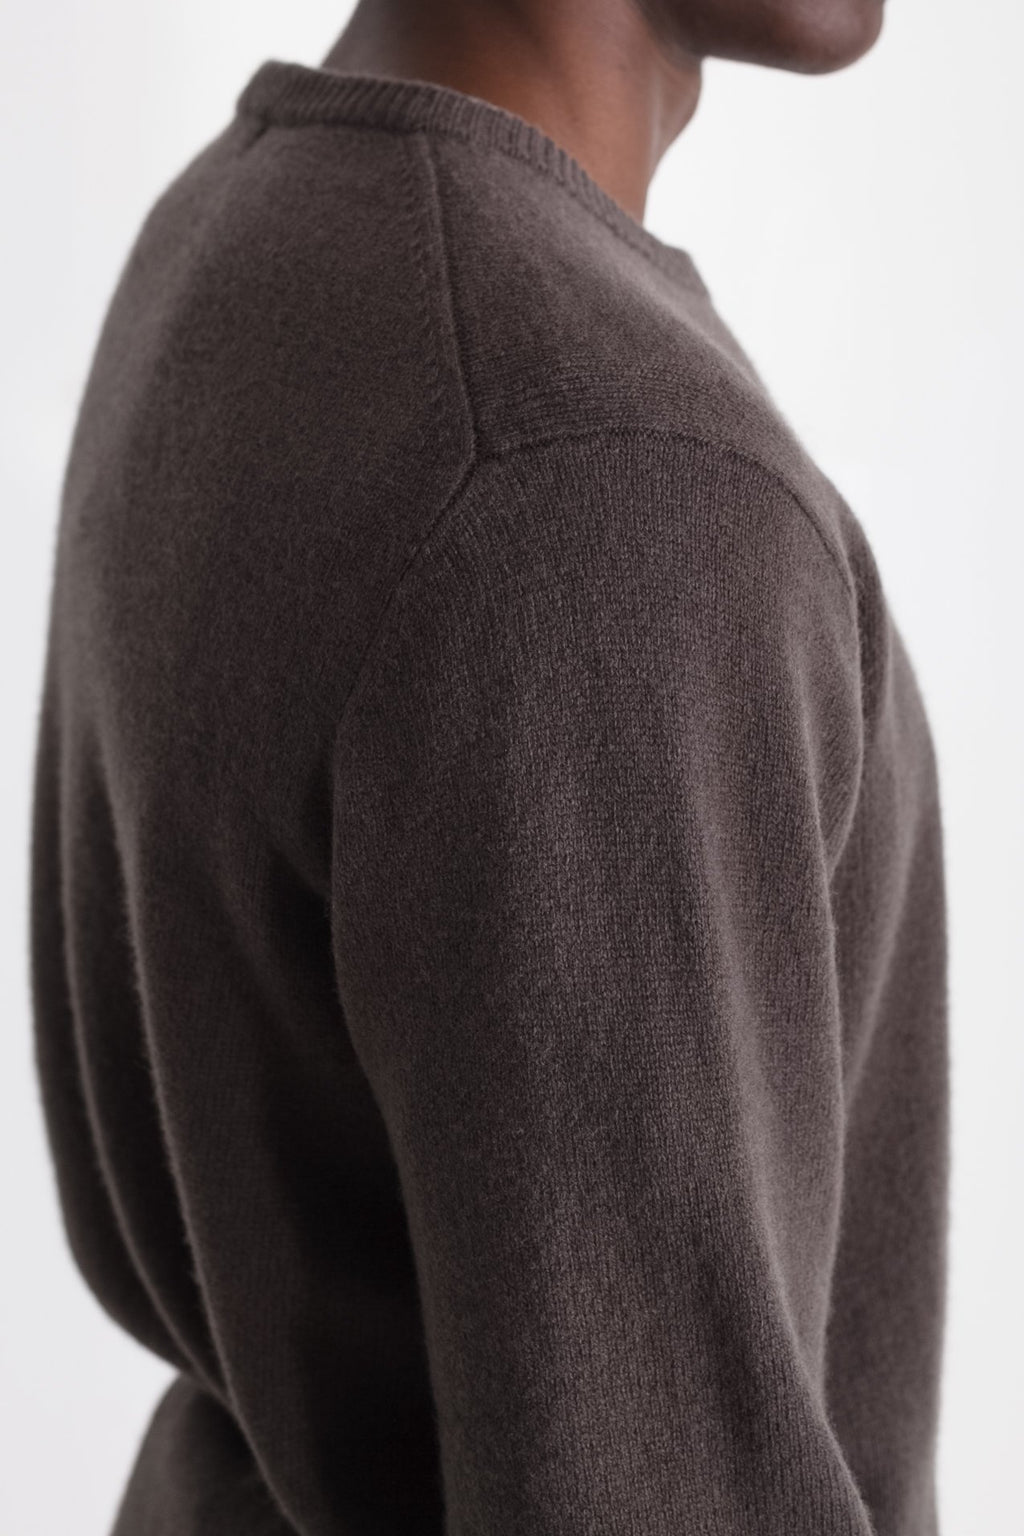 New Wool Crew Neck in Taupe 04